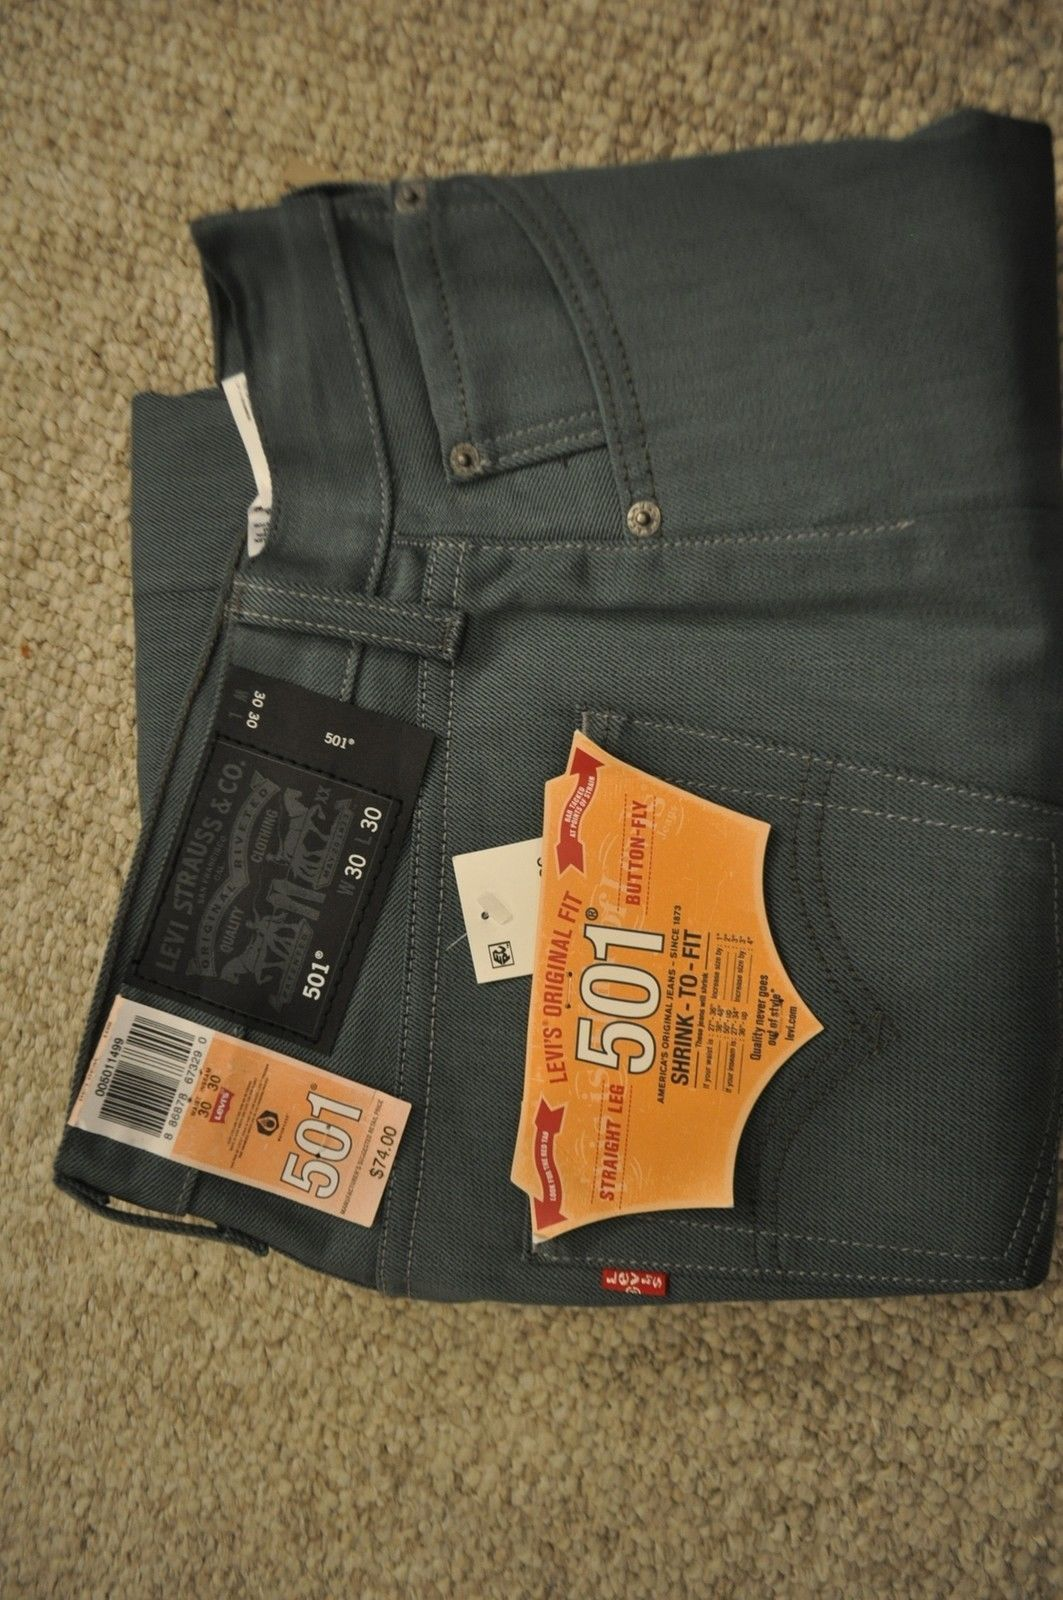 NWT Men's Levi's 501 Original Fit Shrink-To-Fit Straight Button Fly Green 30/30